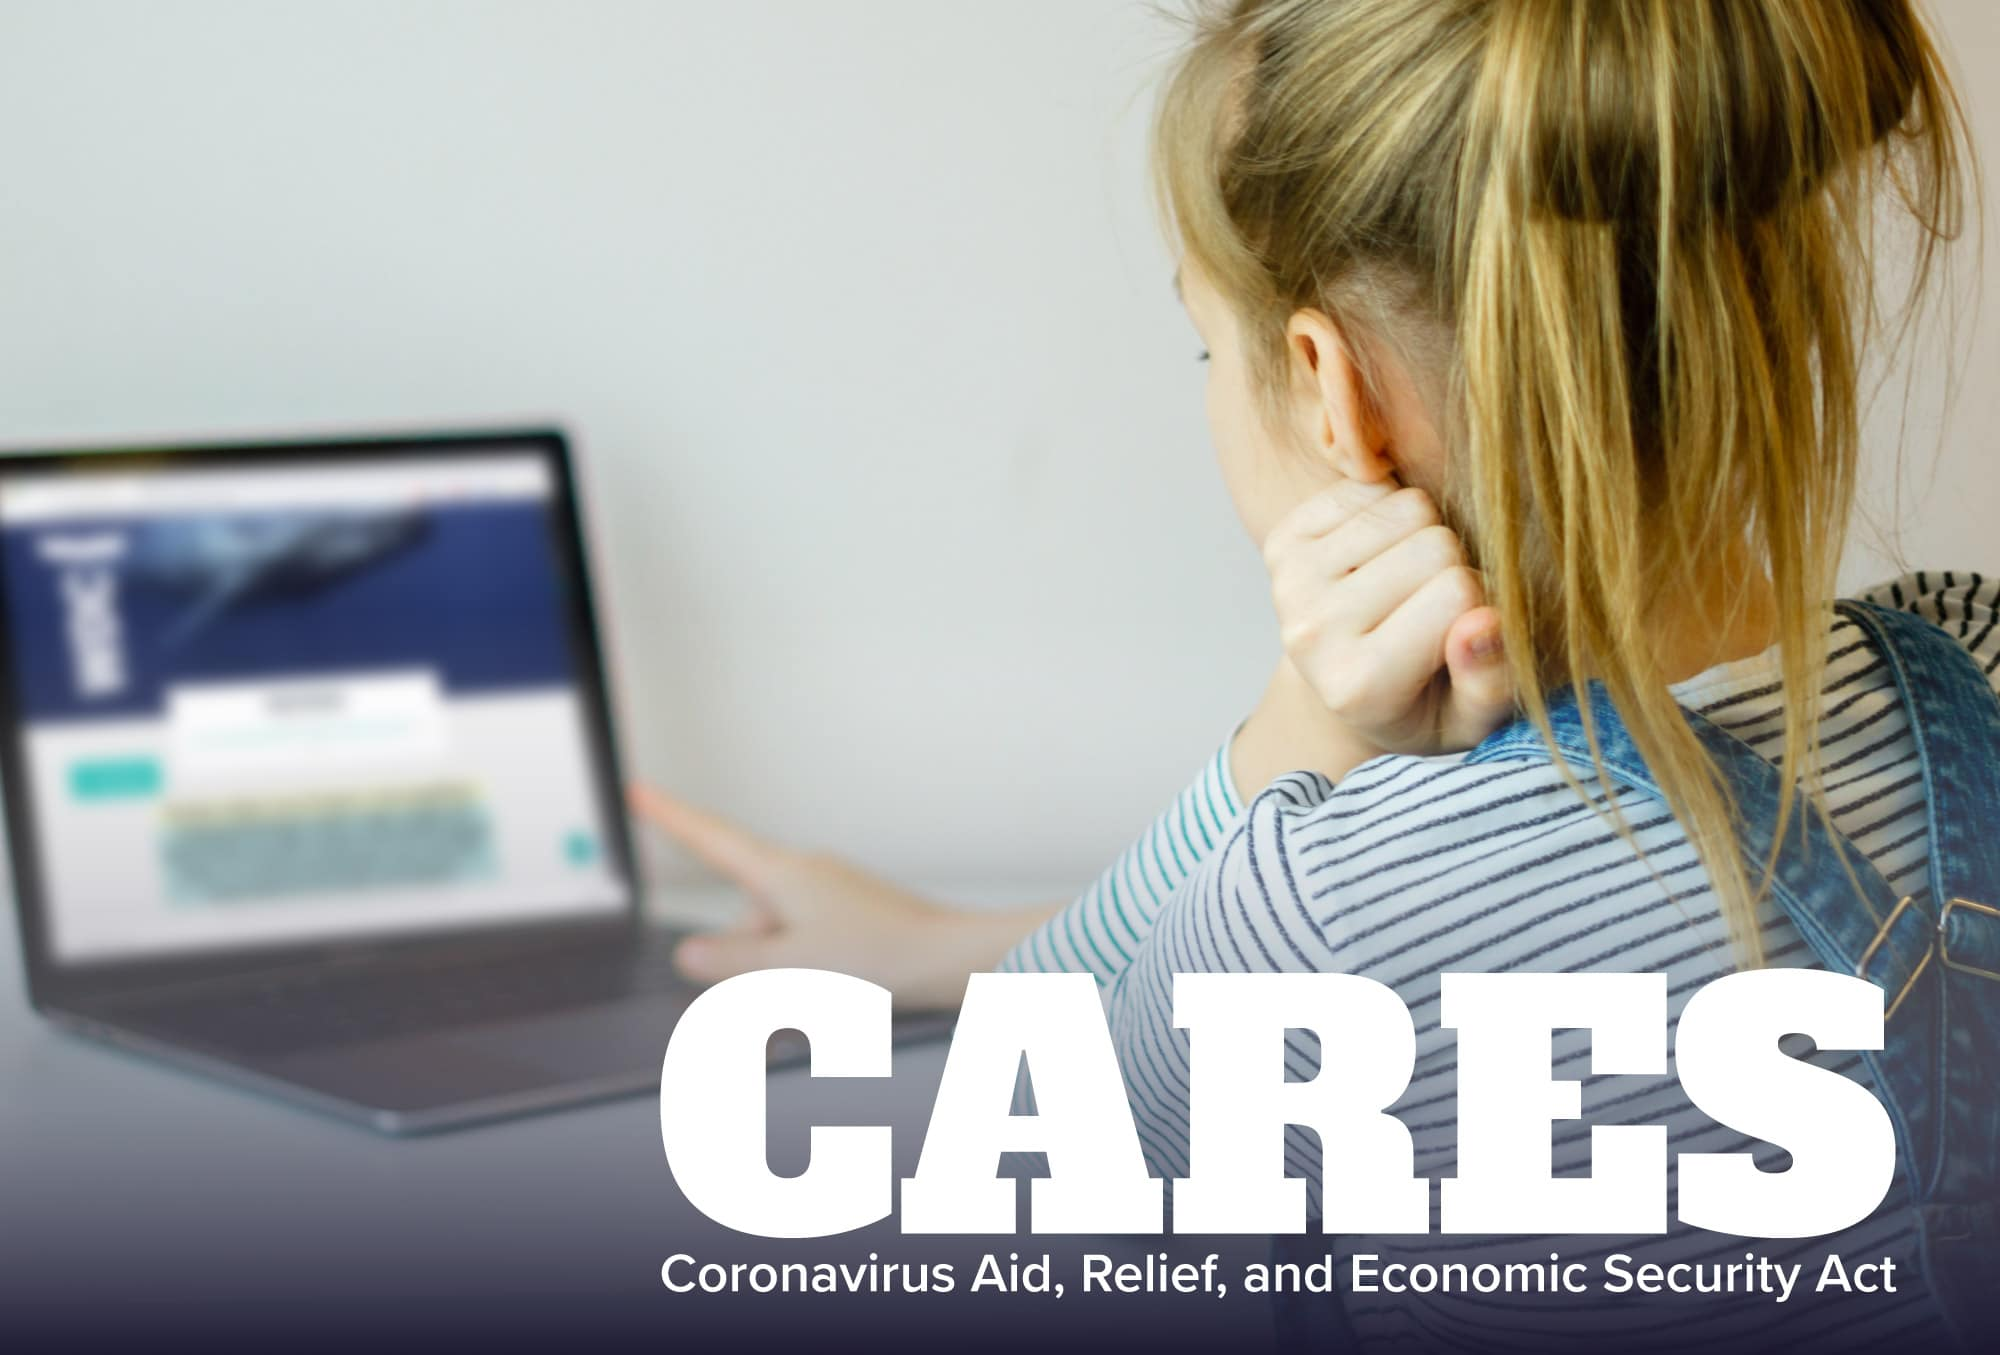 Student working on computer with CARES funding logo